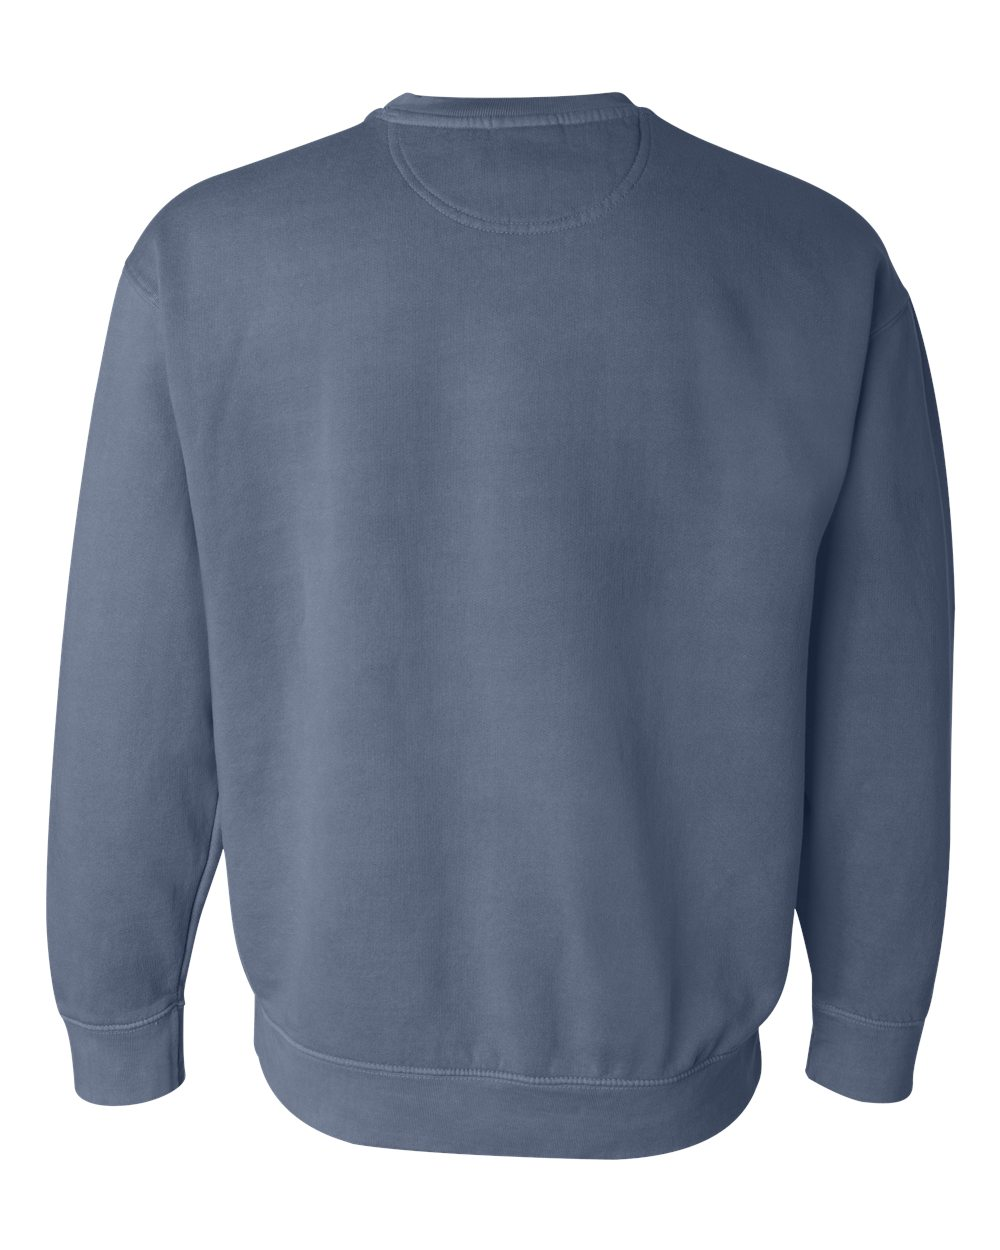 Comfort-Colors-Mens-Garment-Dyed-Ringspun-Crewneck-Sweatshirt-1566-up-to-3XL miniature 7